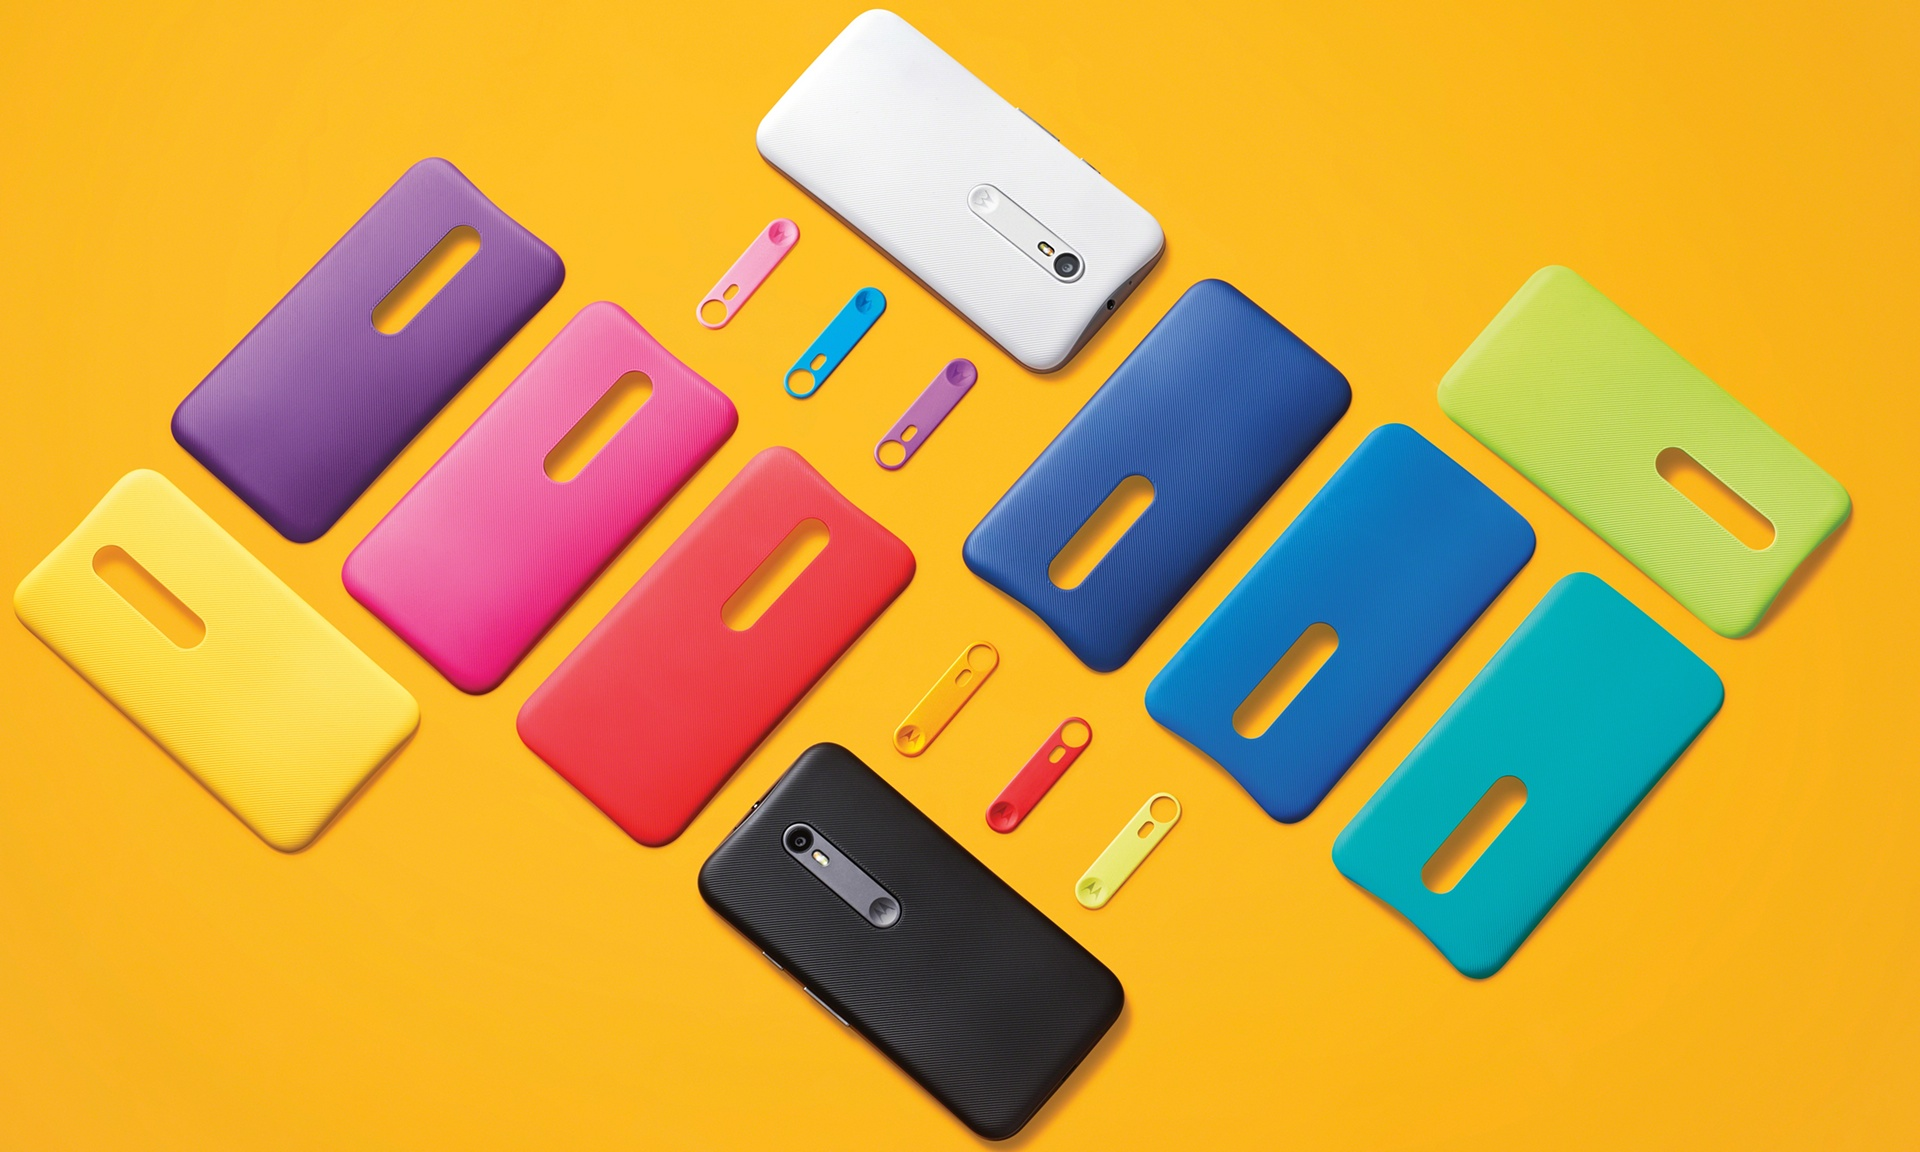 Moto G 3rd gen launched